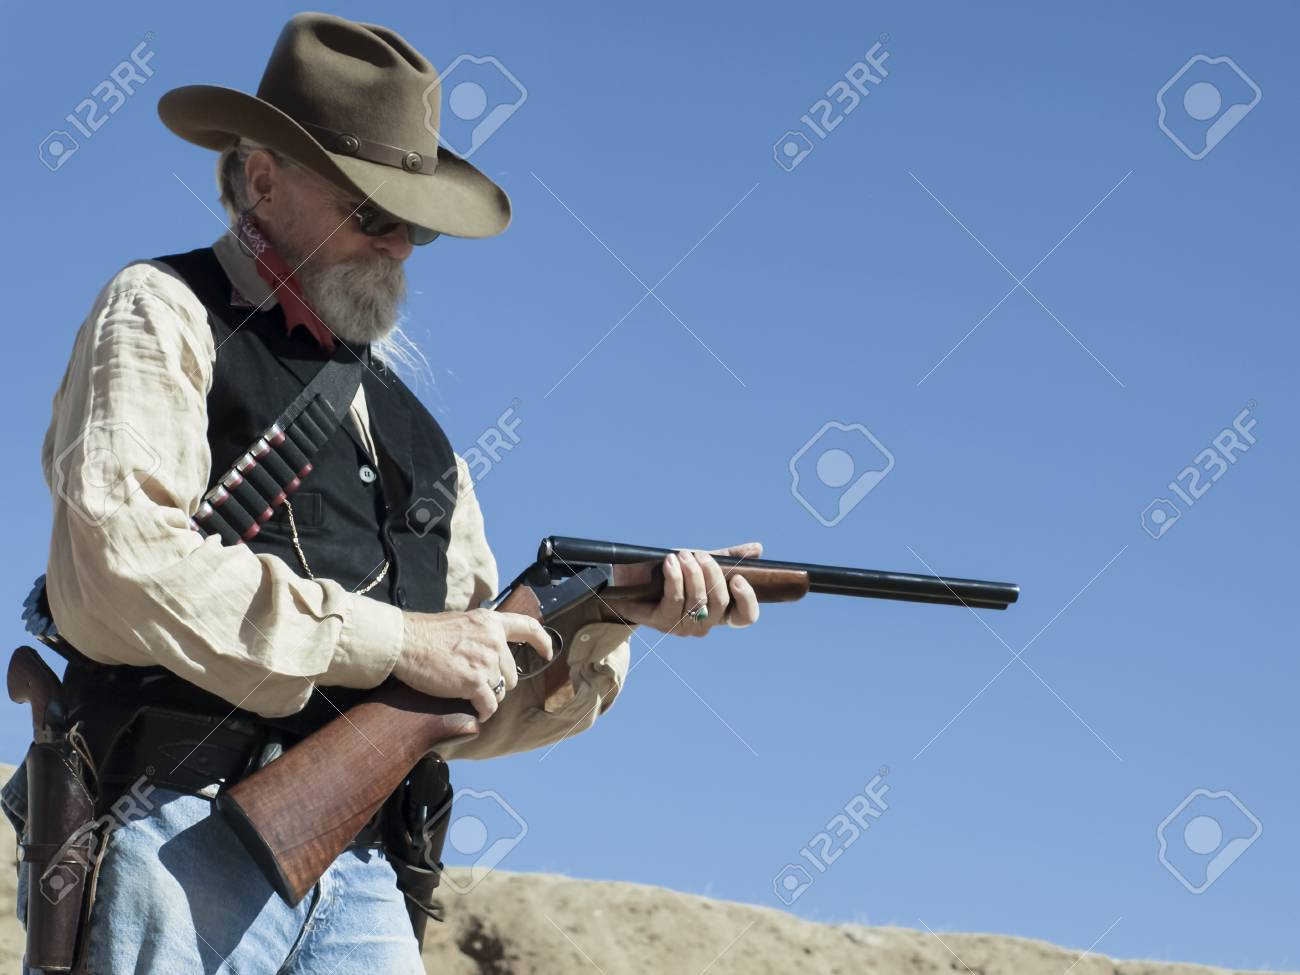 Cowboy Action Shooting Club. The firearms used are based on those which existed in the 19th century American West, i.e. lever action rifle, single action revolver, and shotgun. Stock Photo - 13118291